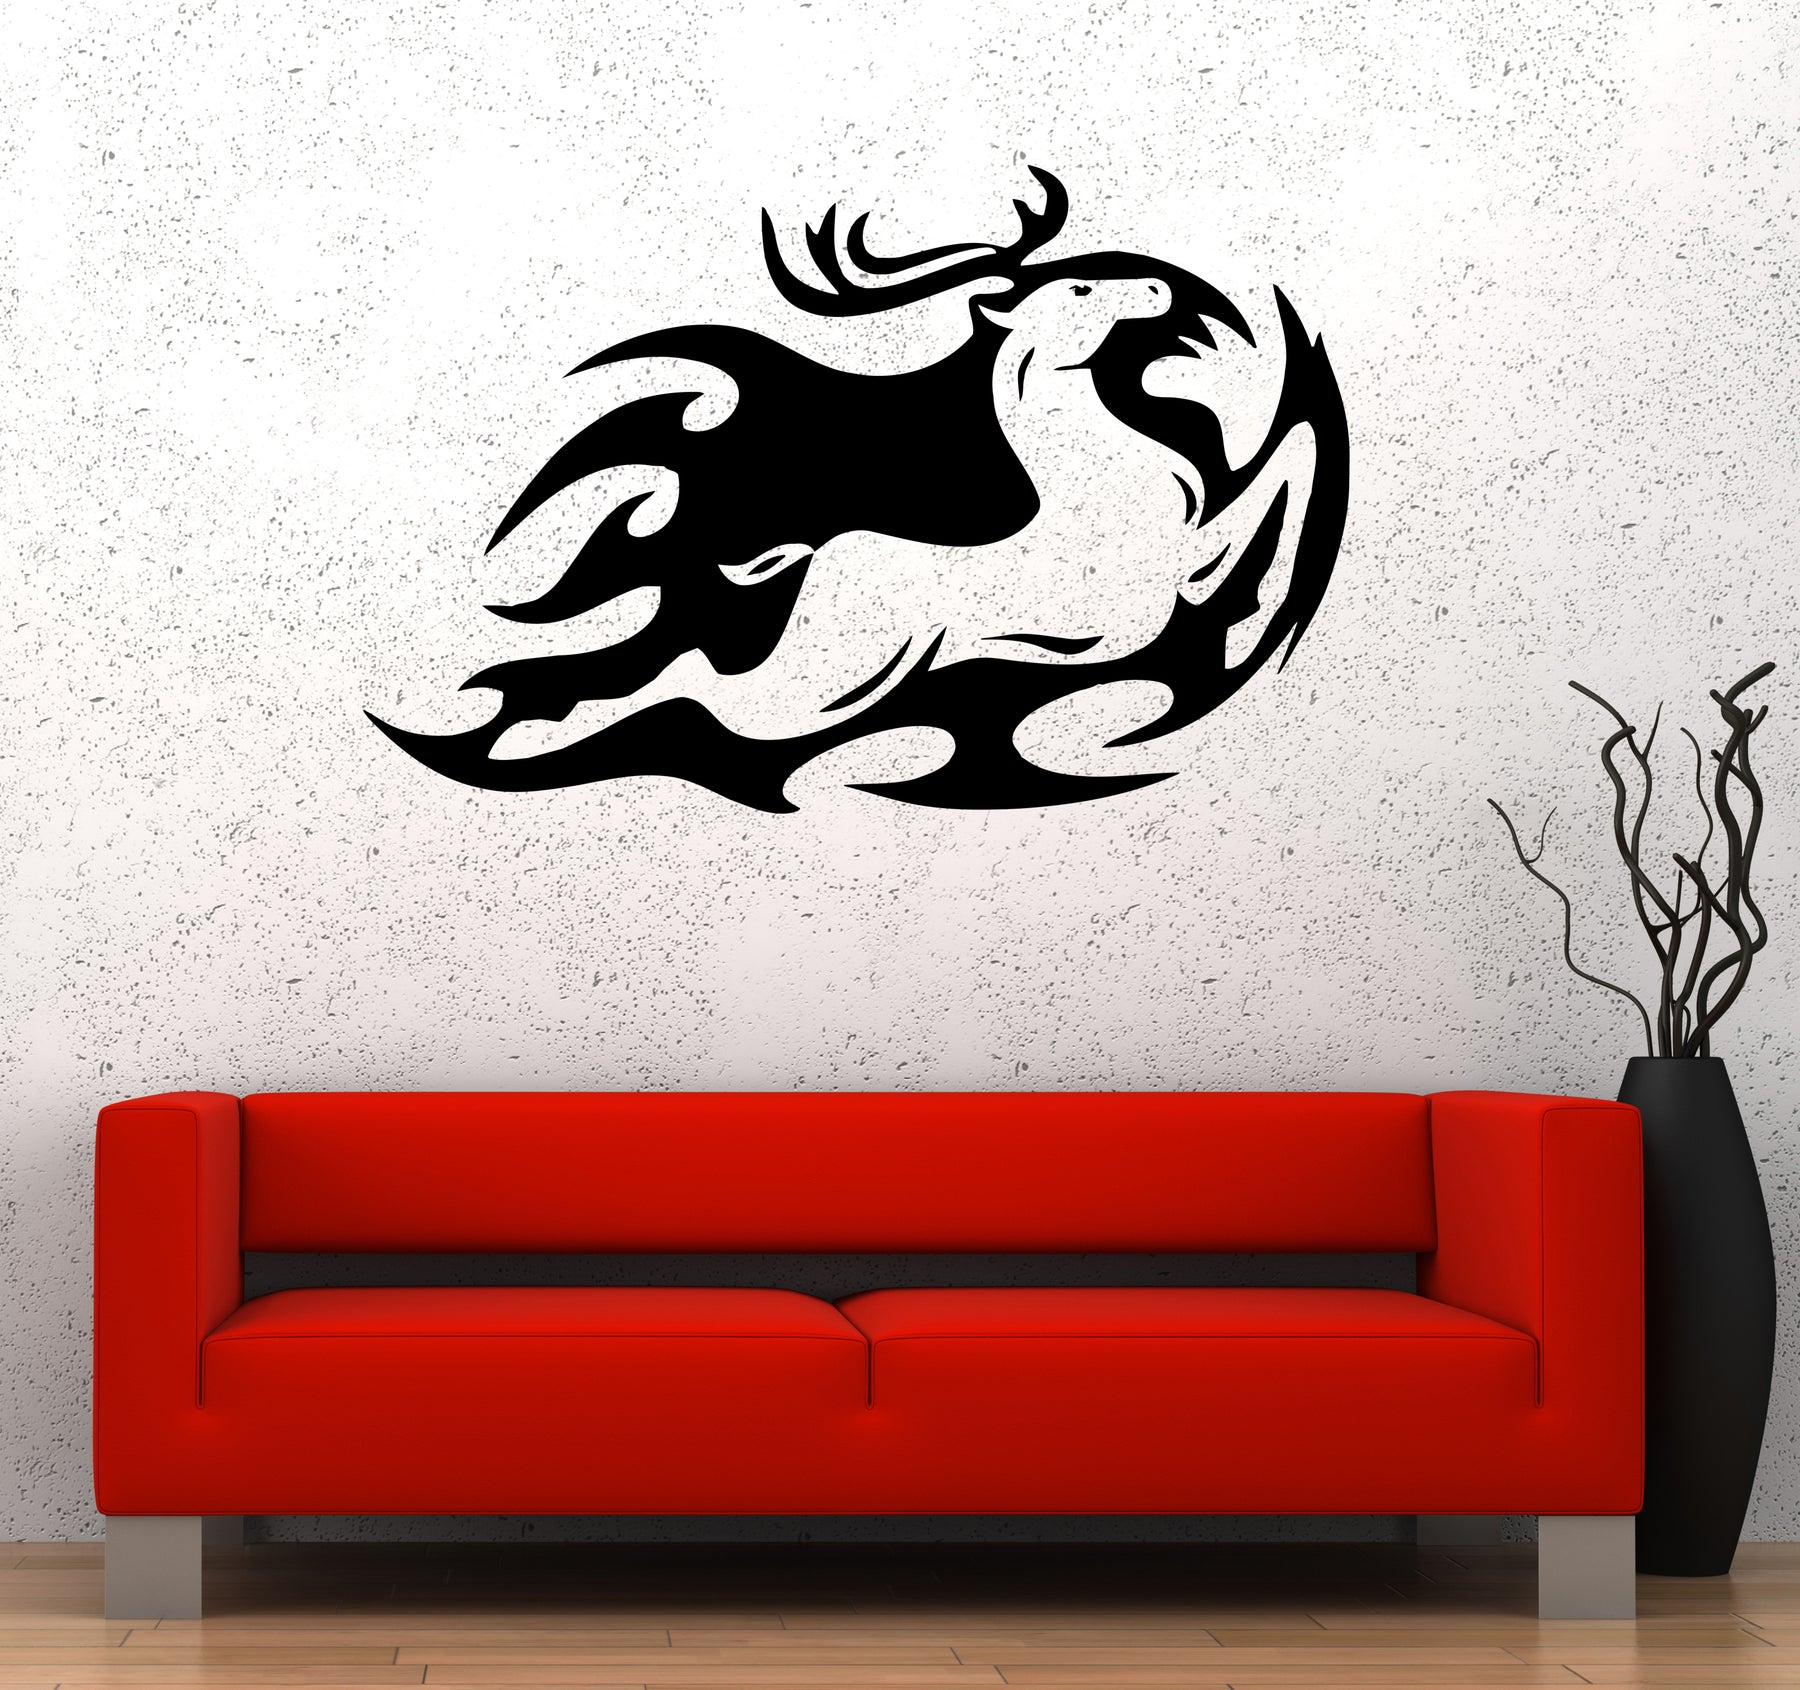 Wall Decal Deer Doe Animal Forest Nature Moose Vinyl Sticker (ed1668)